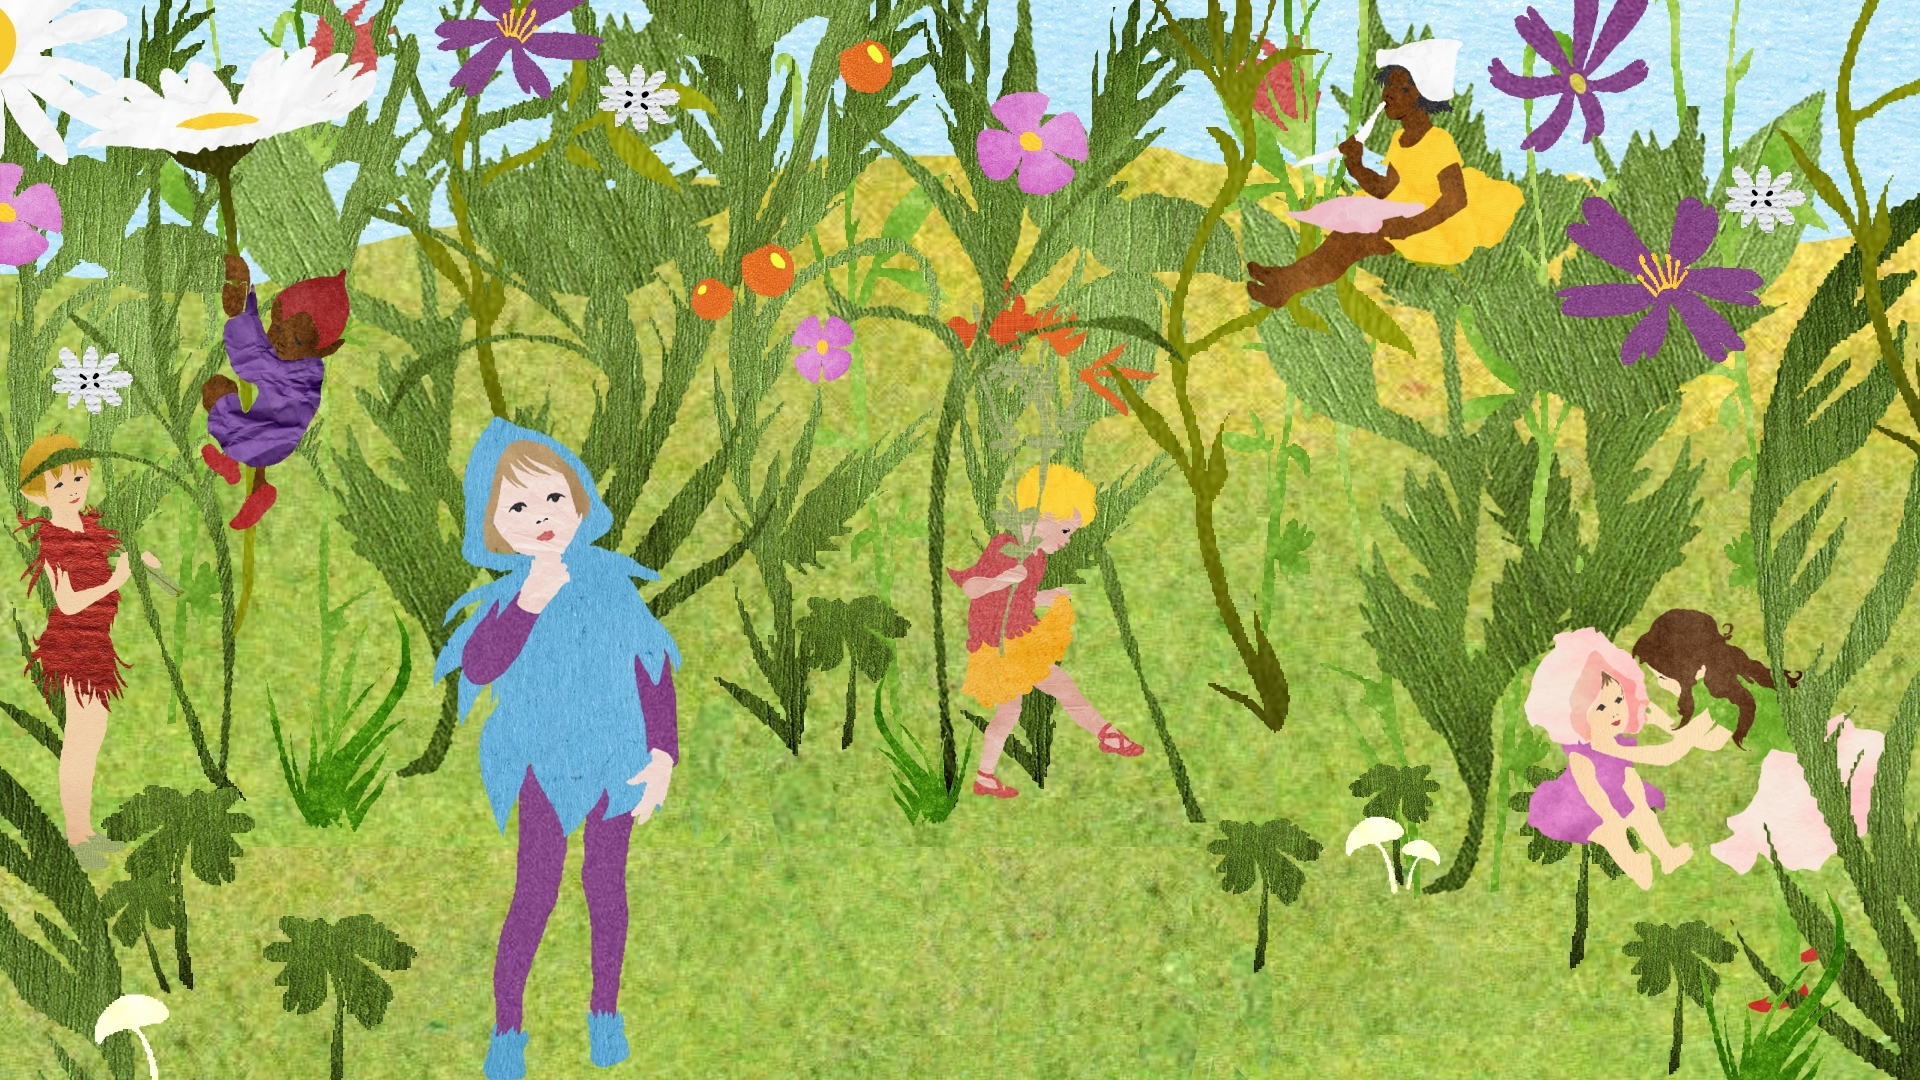 Children in the Flowers